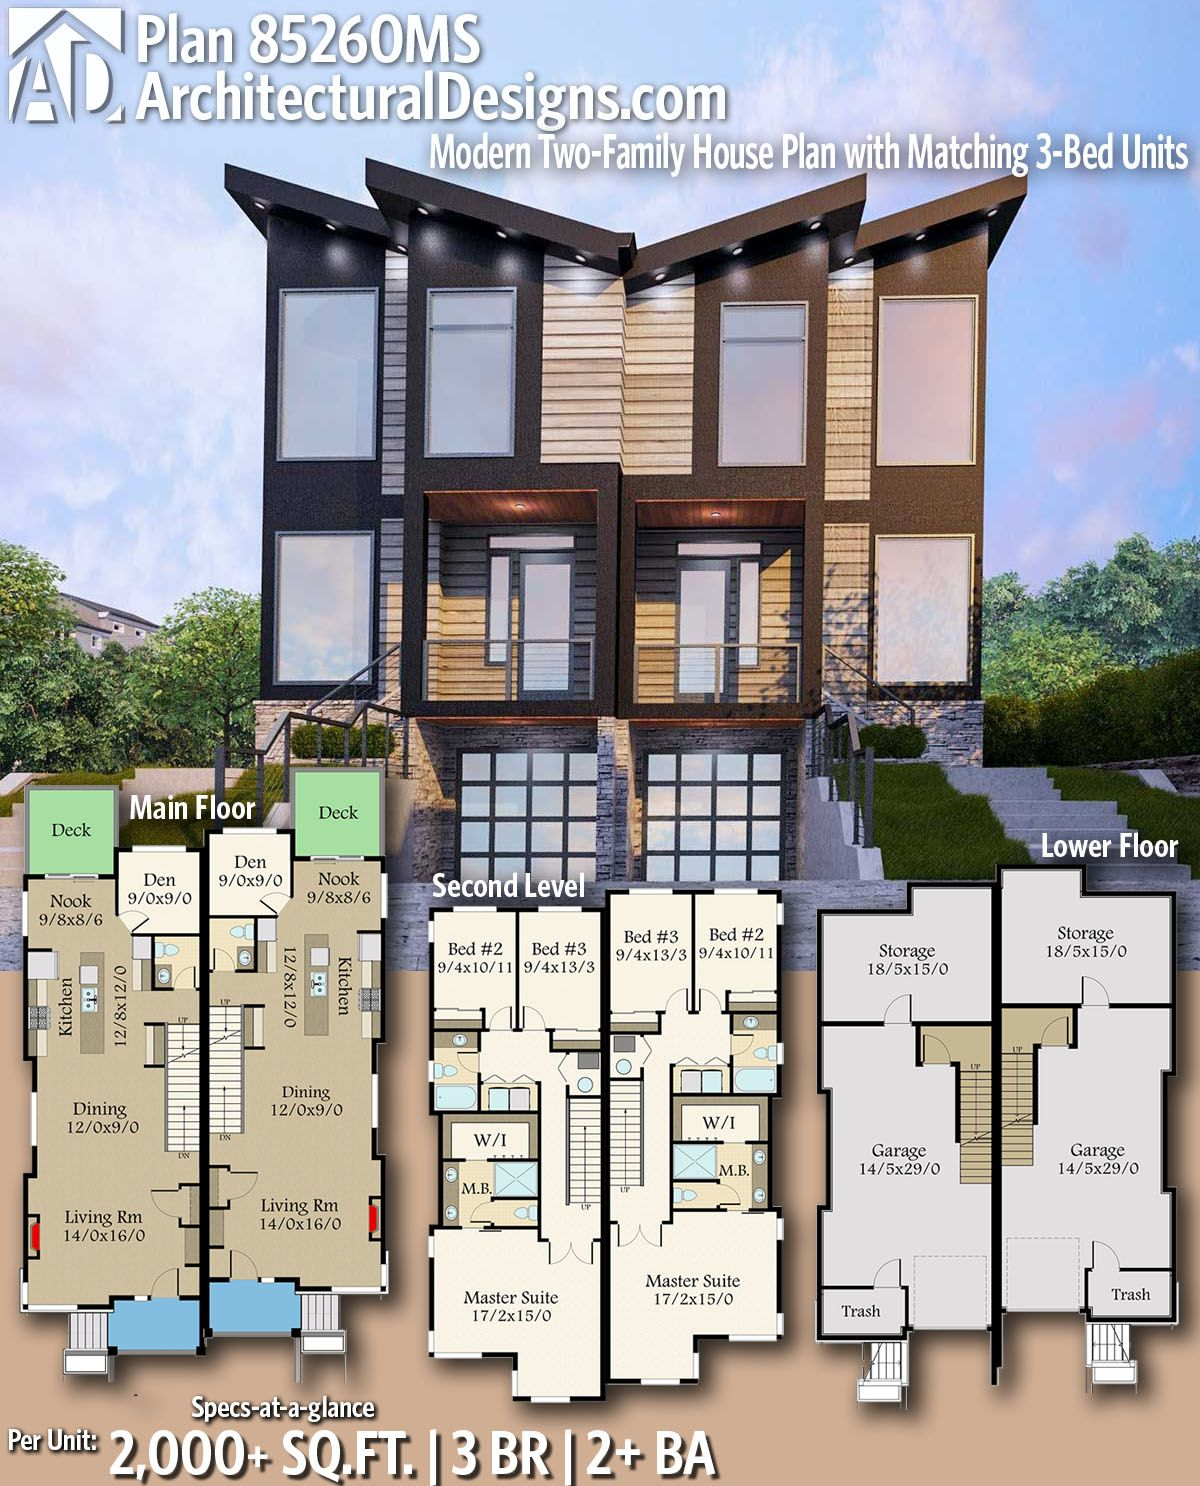 Plan 85260ms Modern Two Family House Plan With Matching 3 Bed Units Town House Floor Plan Family House Plans House Plans